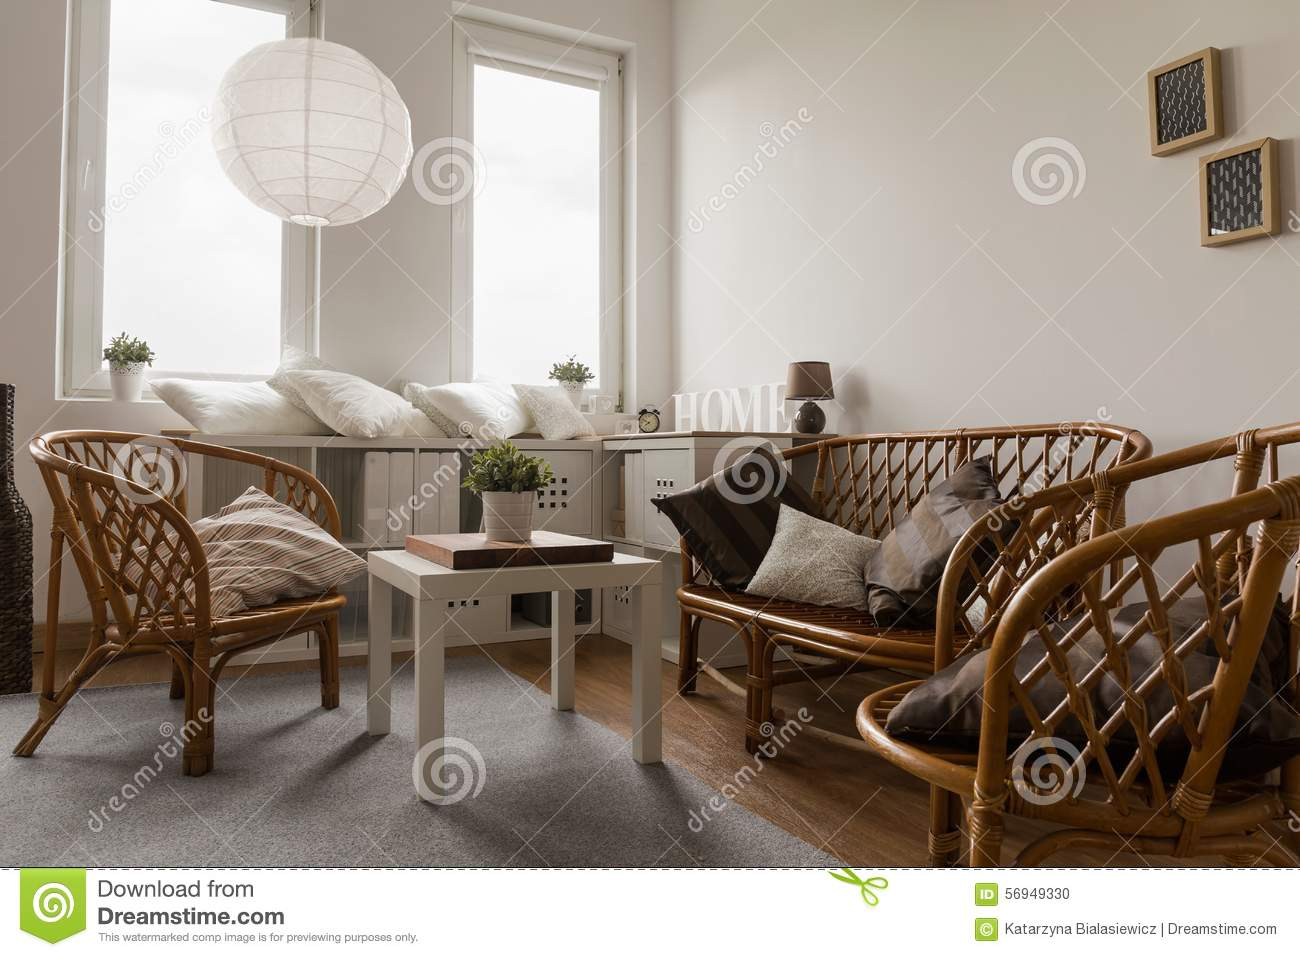 meubles en osier dans le salon photo stock image 56949330. Black Bedroom Furniture Sets. Home Design Ideas